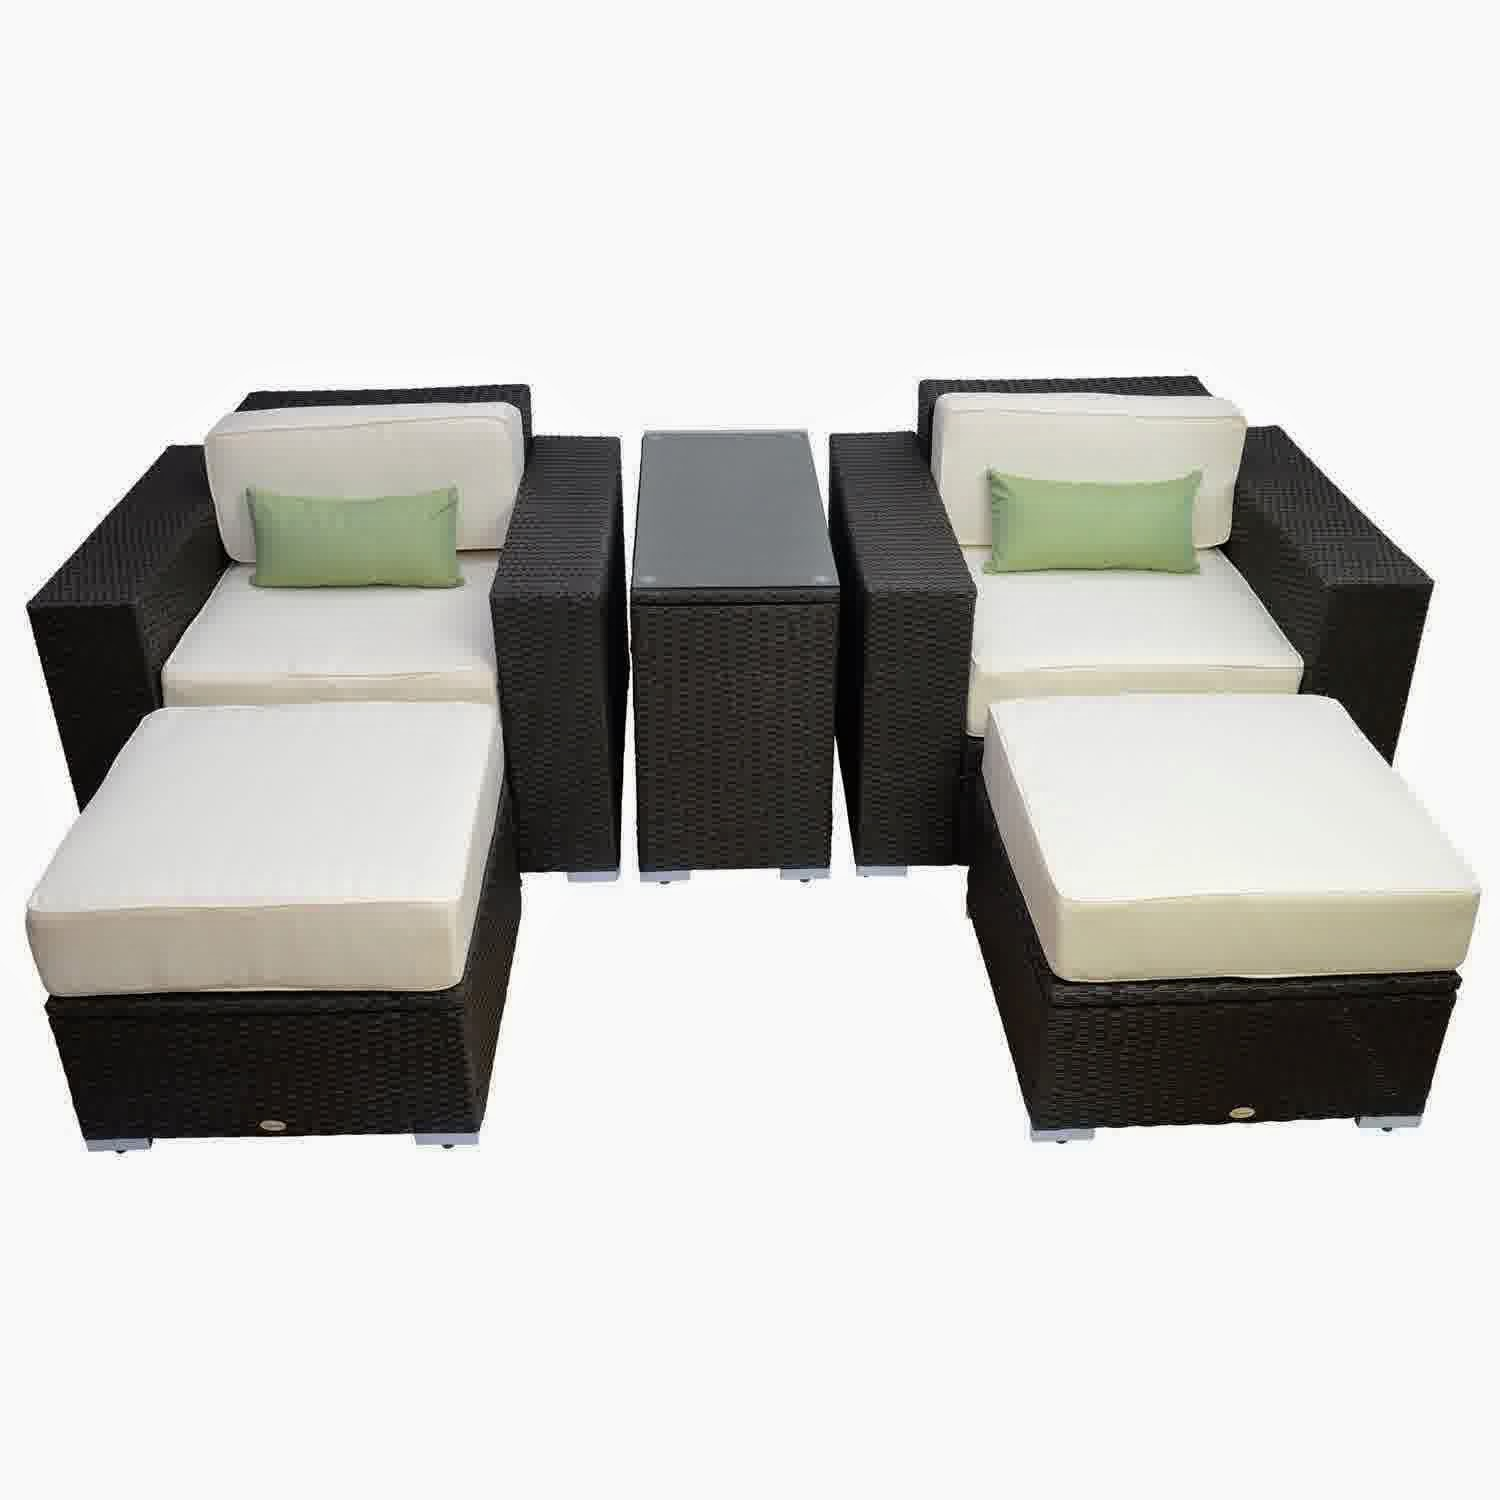 Outsunny 5pc Outdoor Pe Rattan Wicker